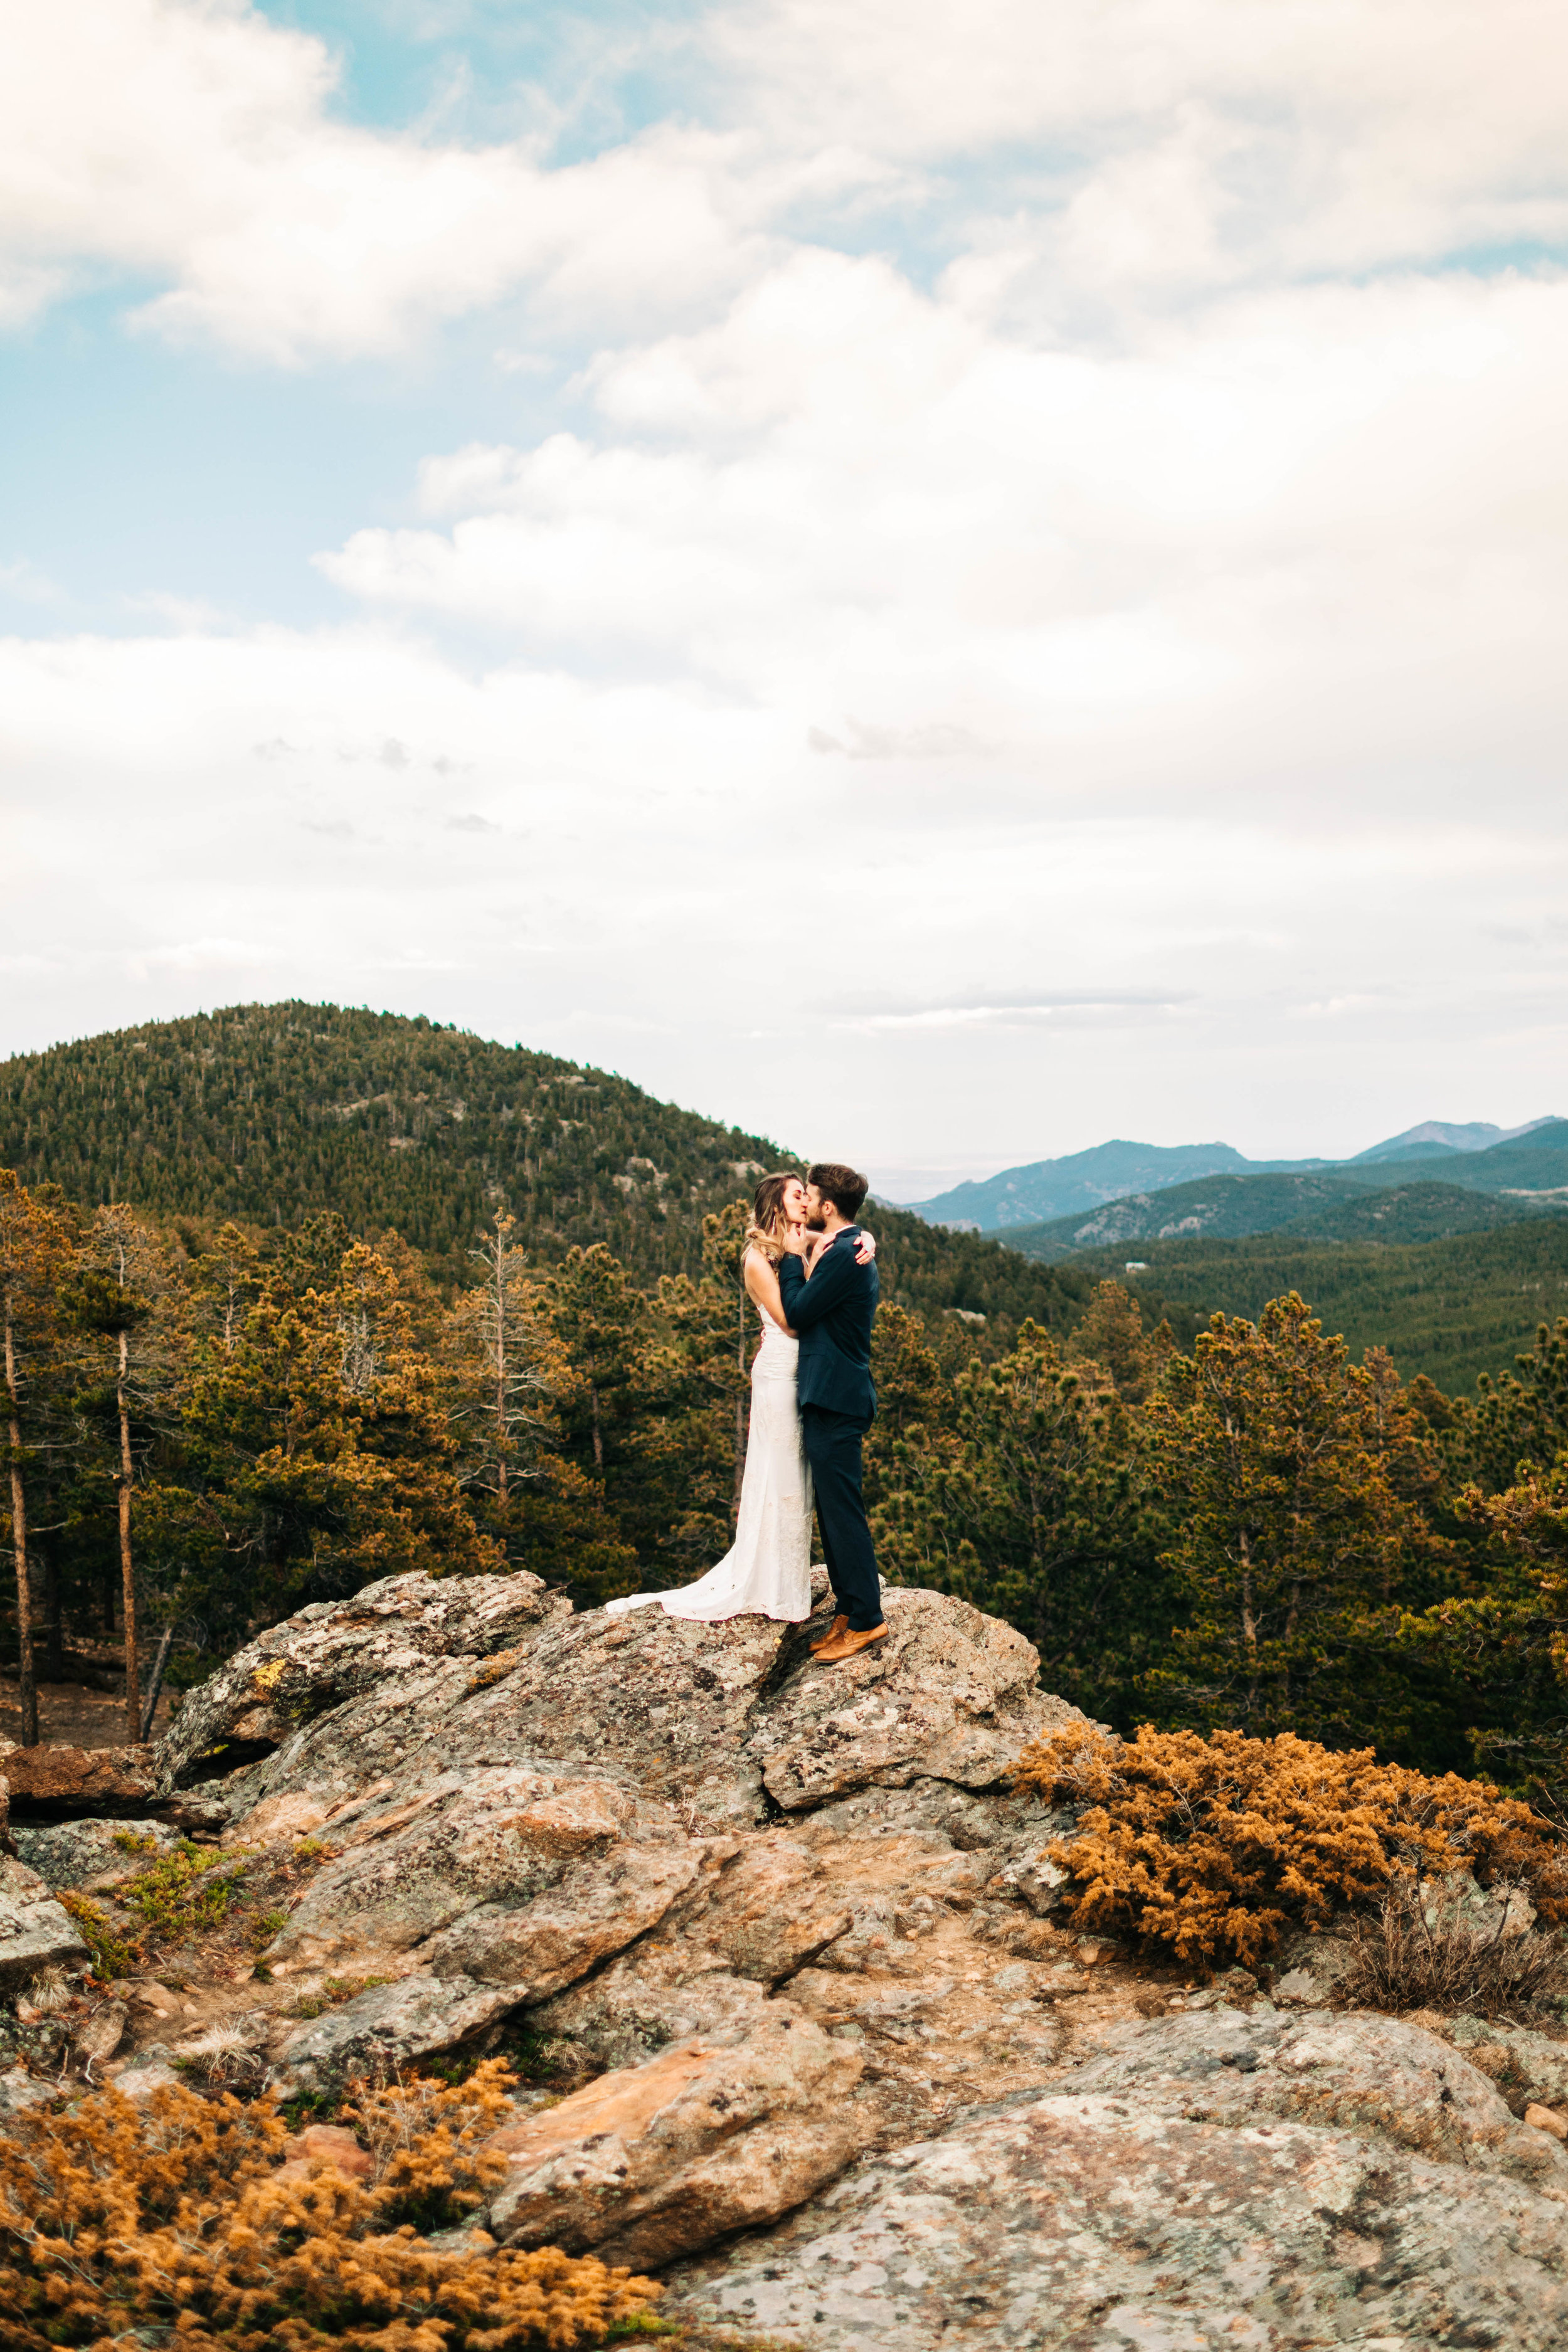 epic Colorado elopement photos on the edge of a mountain | Colorado elopement photographers